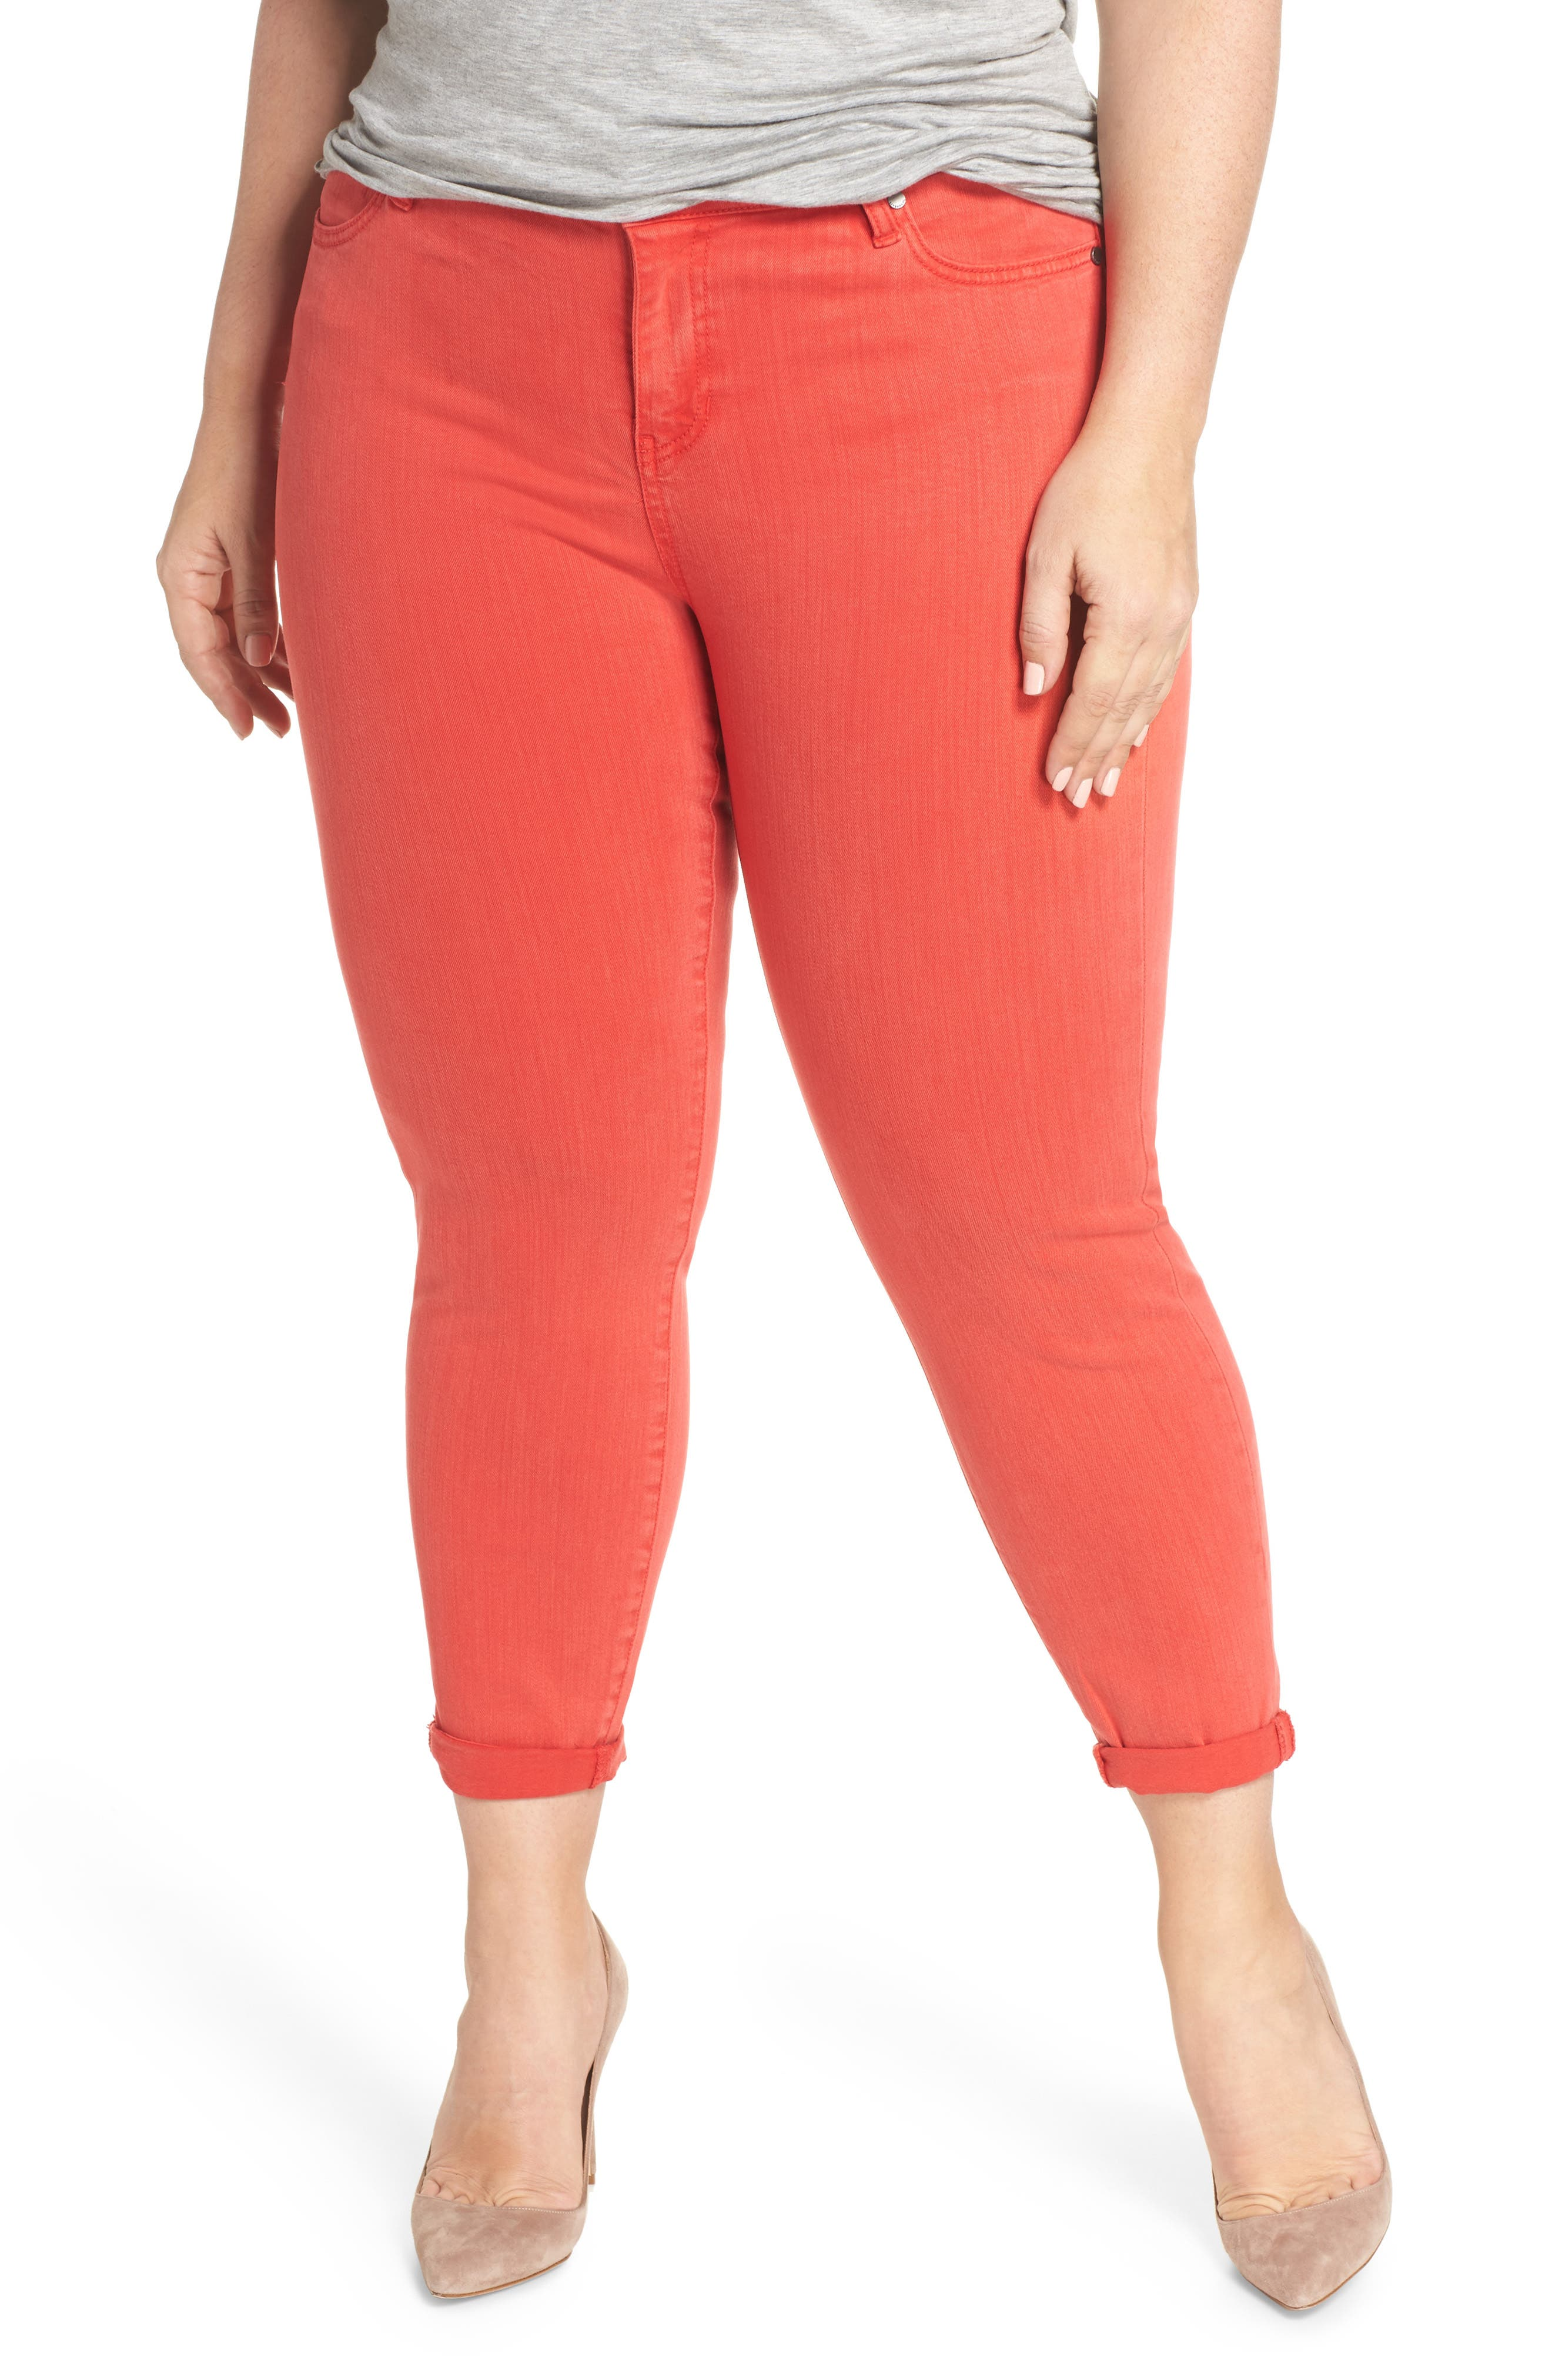 Liverpool Jeans Company Cami Cropped Skinny Jeans (Ribbon Red) (Plus Size)